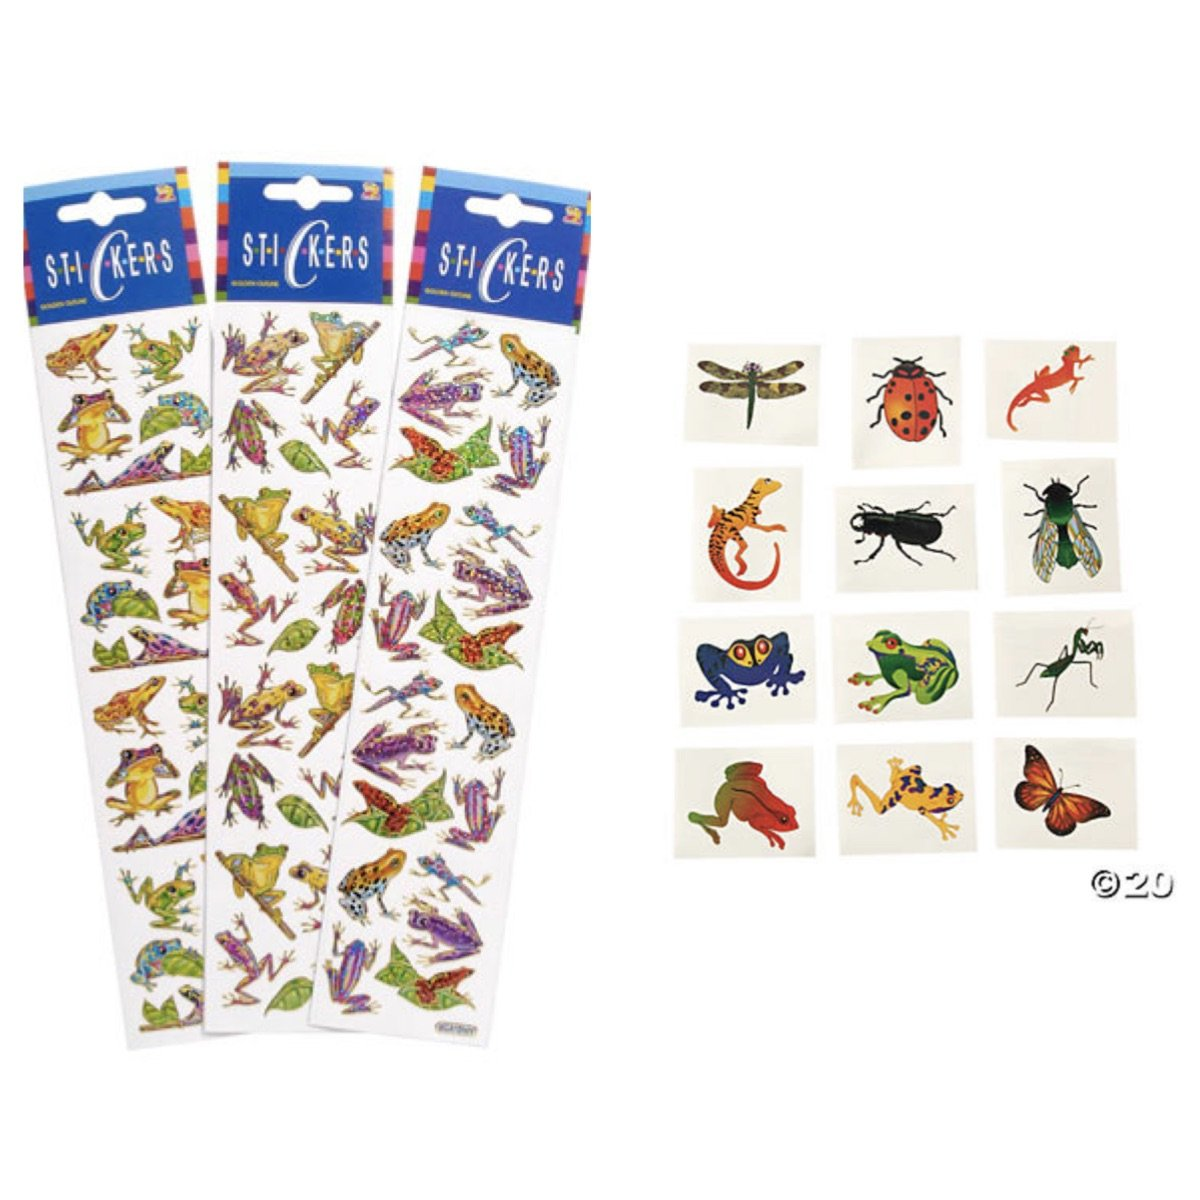 Just4fun - Awesome BUG Frog Reptile - Party Favors - 240 Stickers (12 Sheets of 20) & 72 TATTOOS Insects REPTILES Frogs SCIENCE Teachers CLASSROOM Rewards Incentive